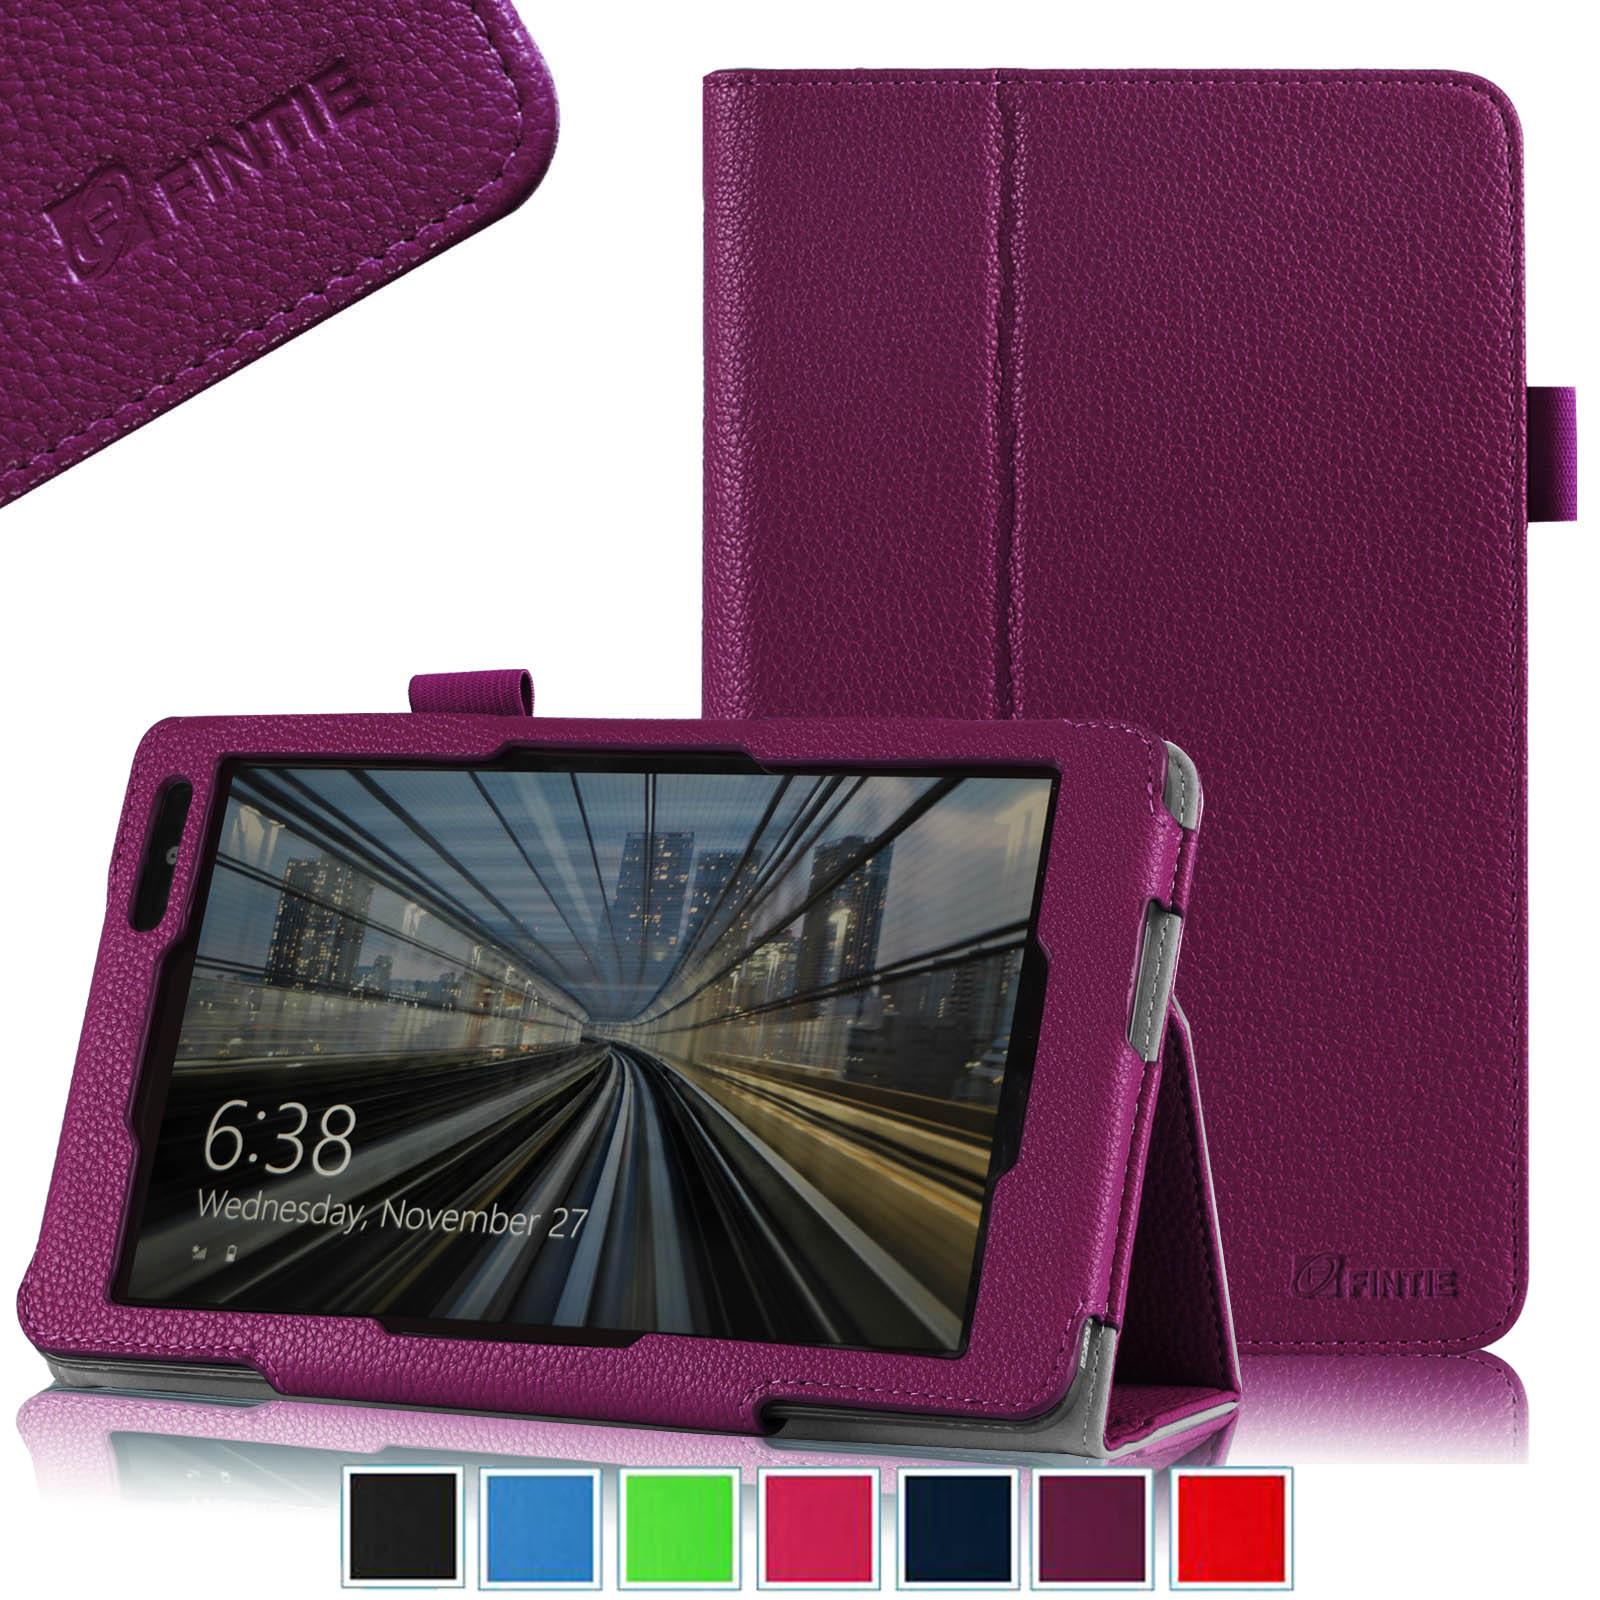 Fintie Dell Venue 8 Pro Tablet (Windows 8.1) Folio Case Slim Fit PU Leather Stand Cover, Purple